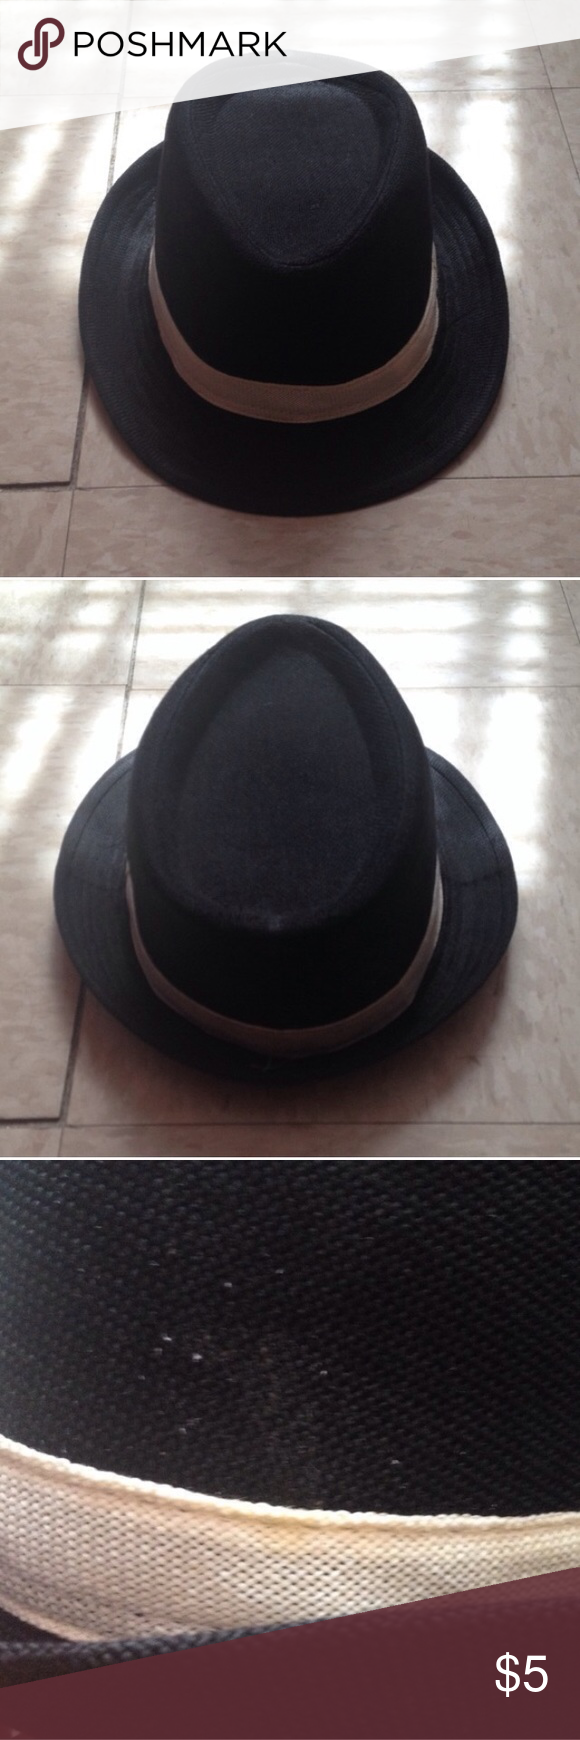 Fedora The only imperfection is a mark on the back. BDG Accessories Hats